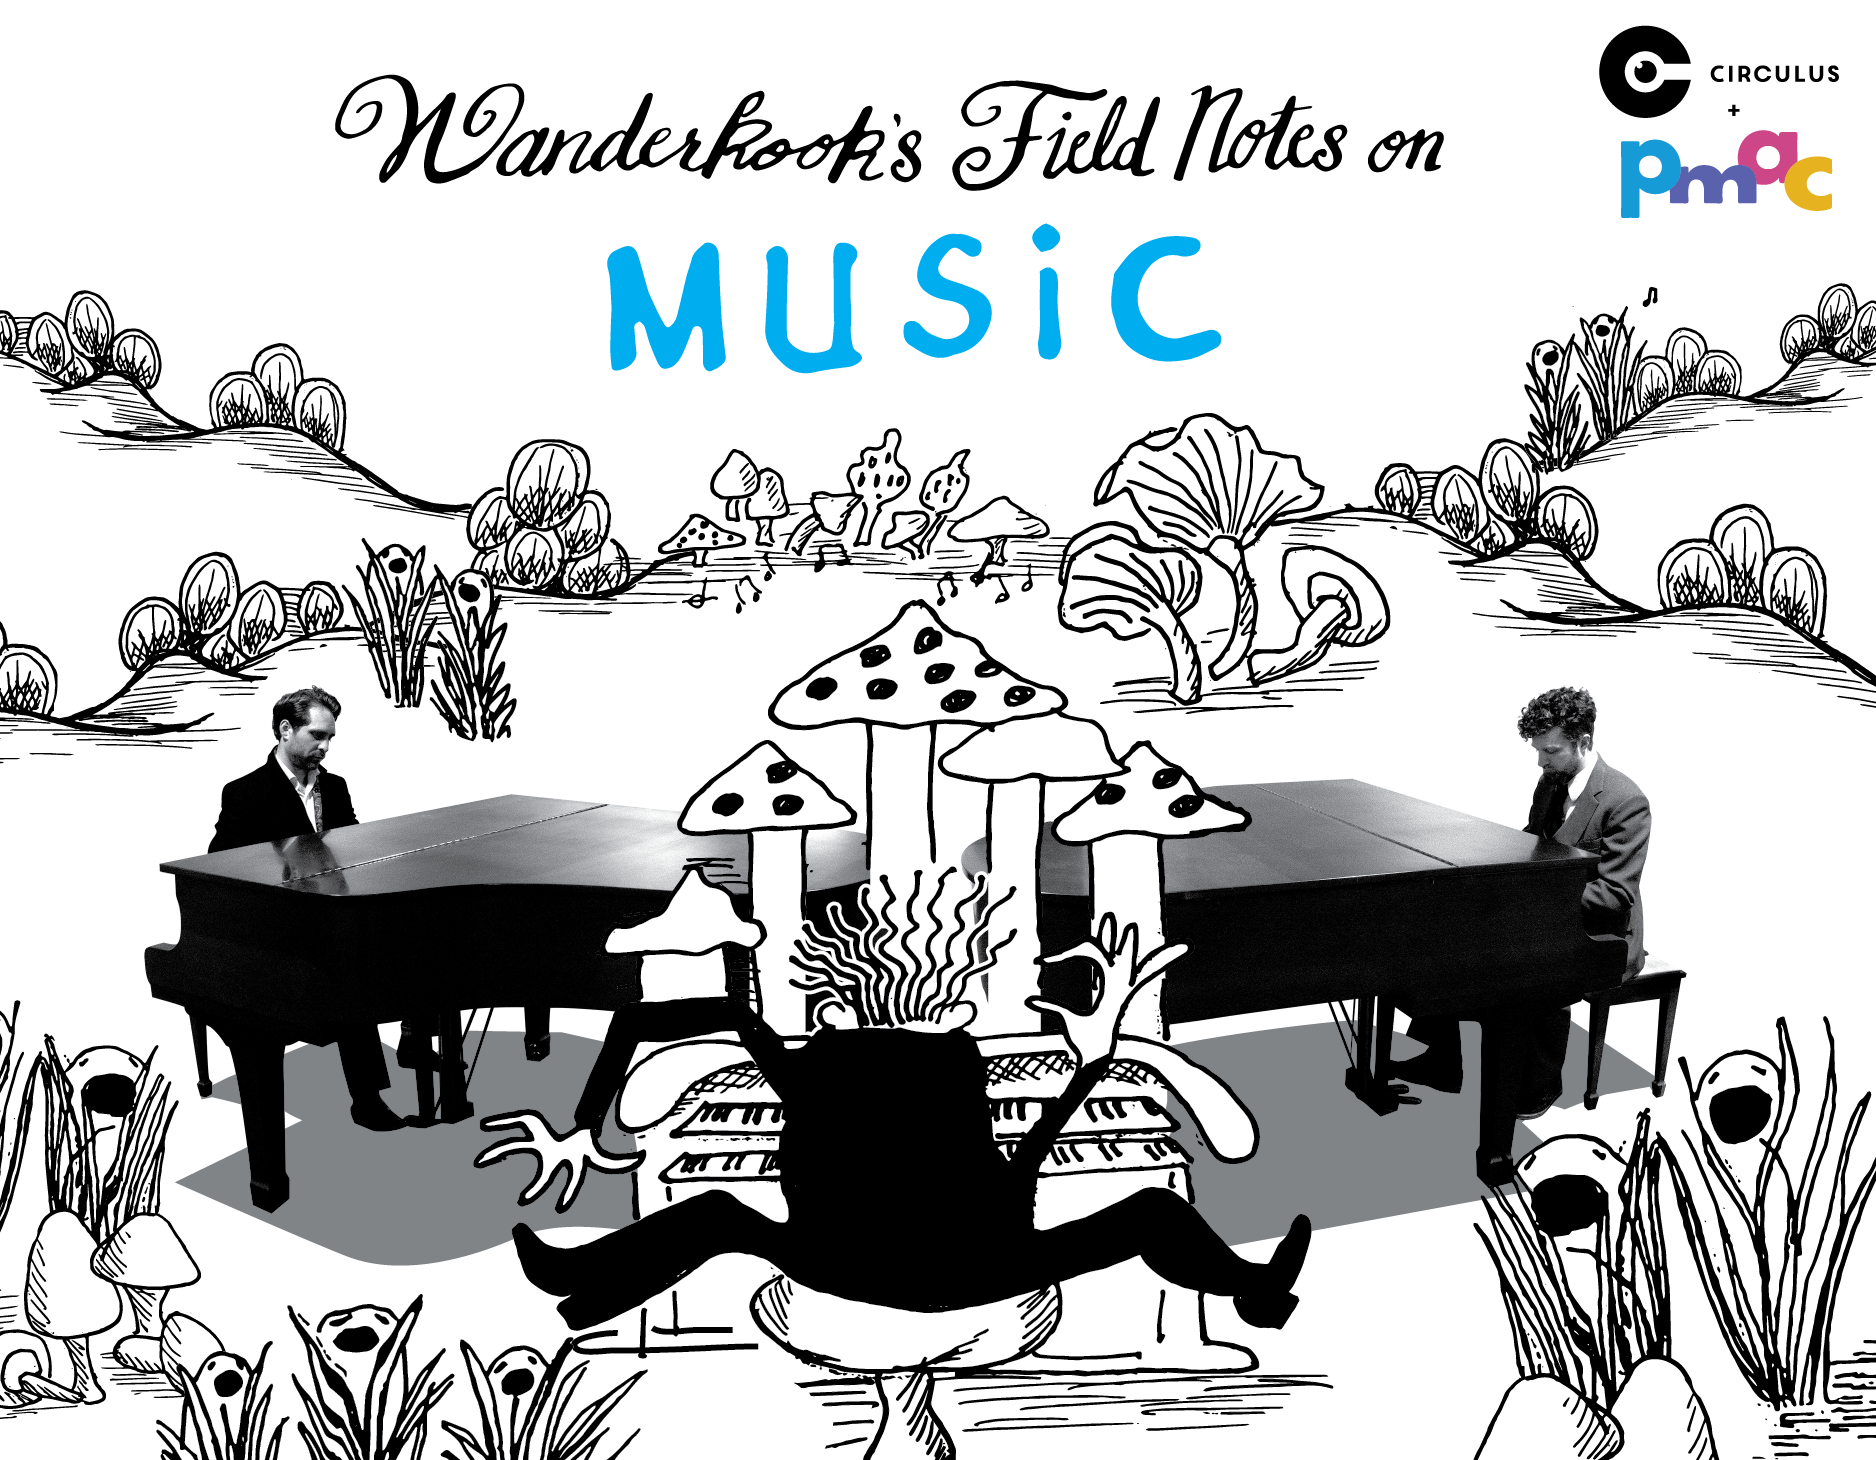 Wanderkook-Field-Notes-Music-ticket-page.png